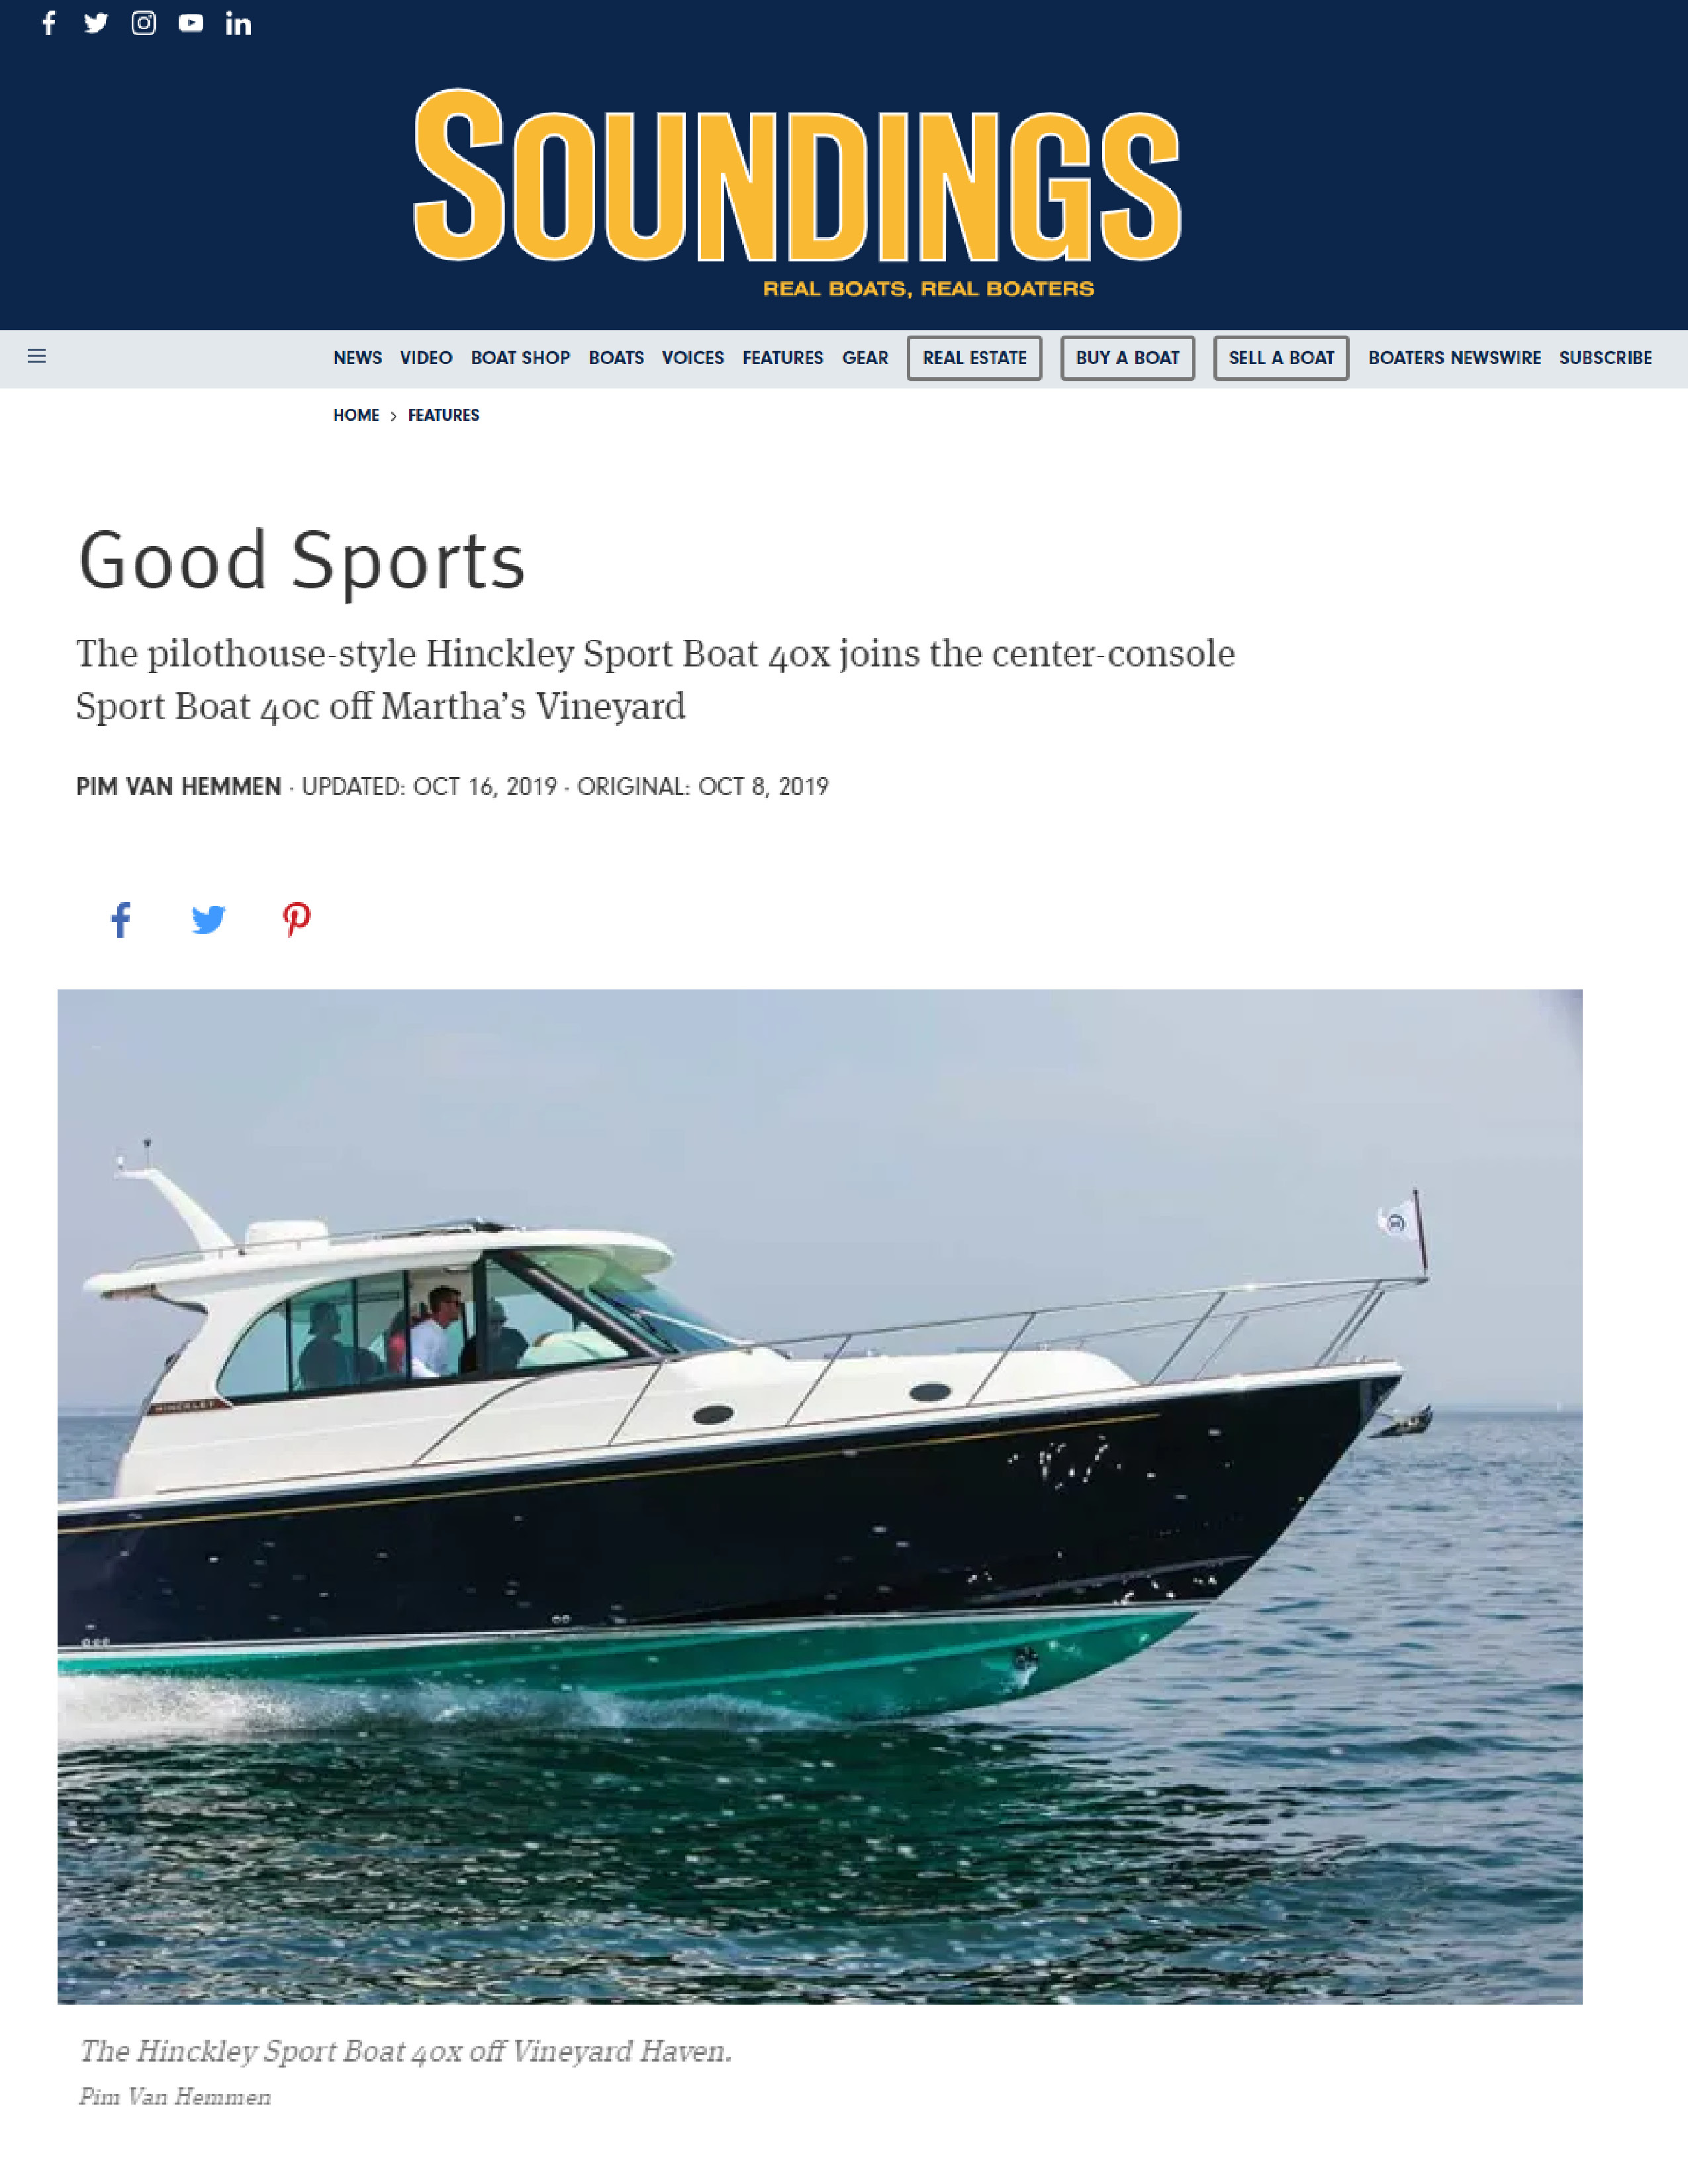 Hinckley Sport Boats featured on Soundings